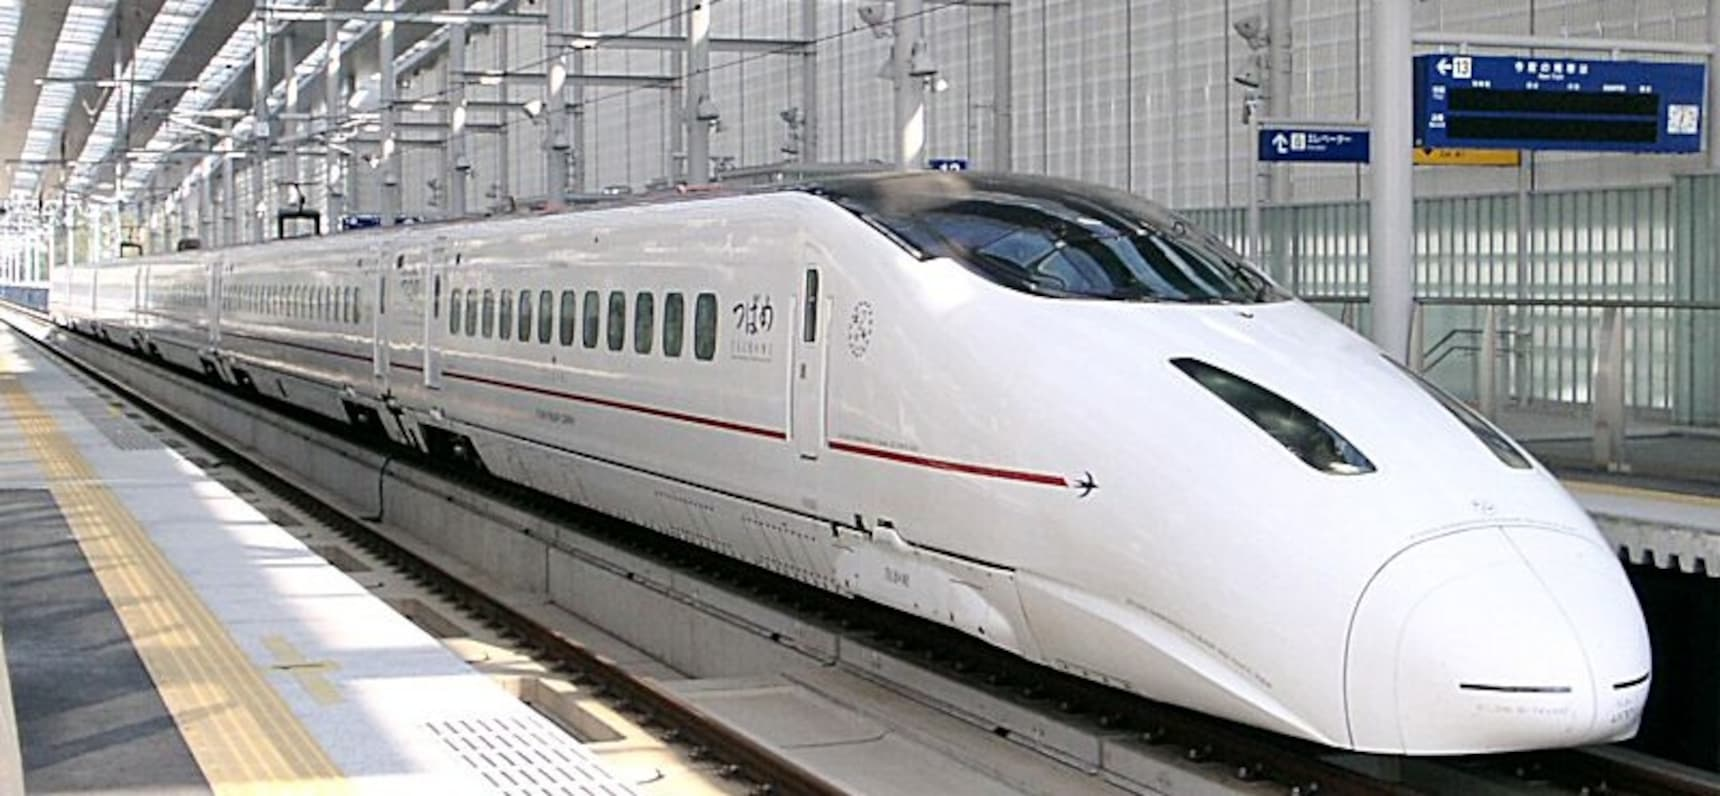 Reserve Your Shinkansen Ticket on Your Phone